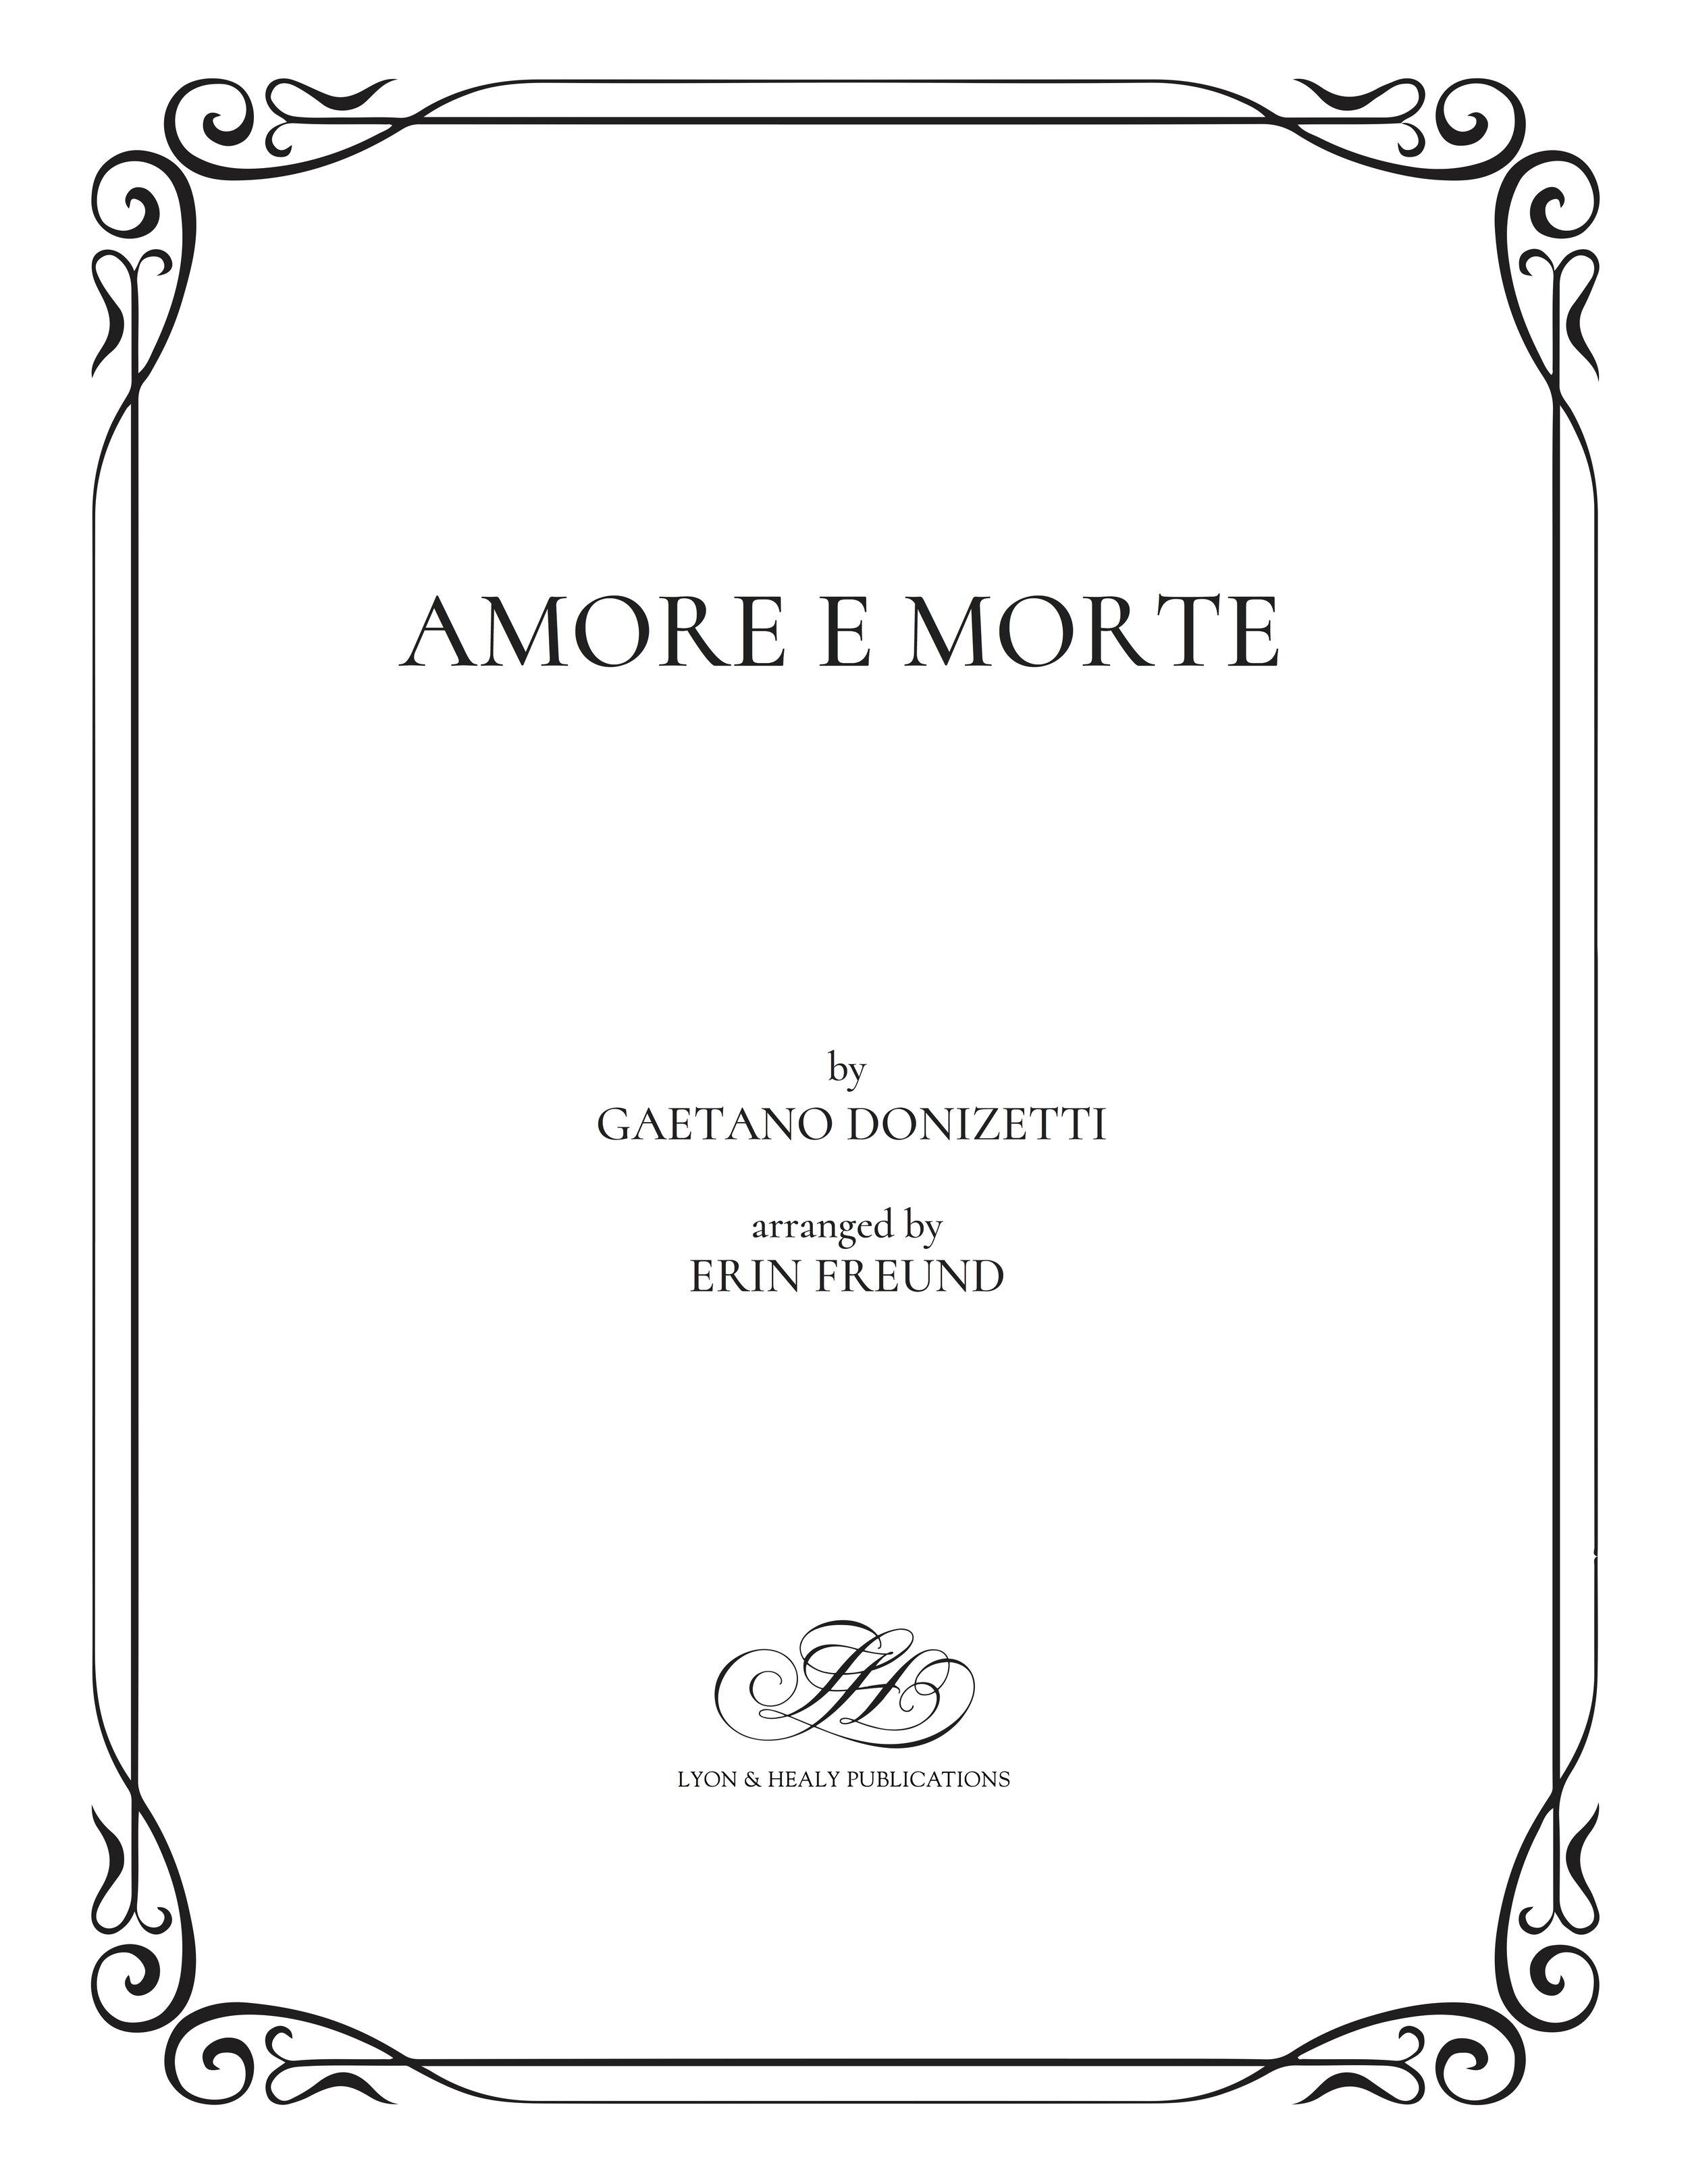 Amore e morte - Donizetti-Freund cover.jpg